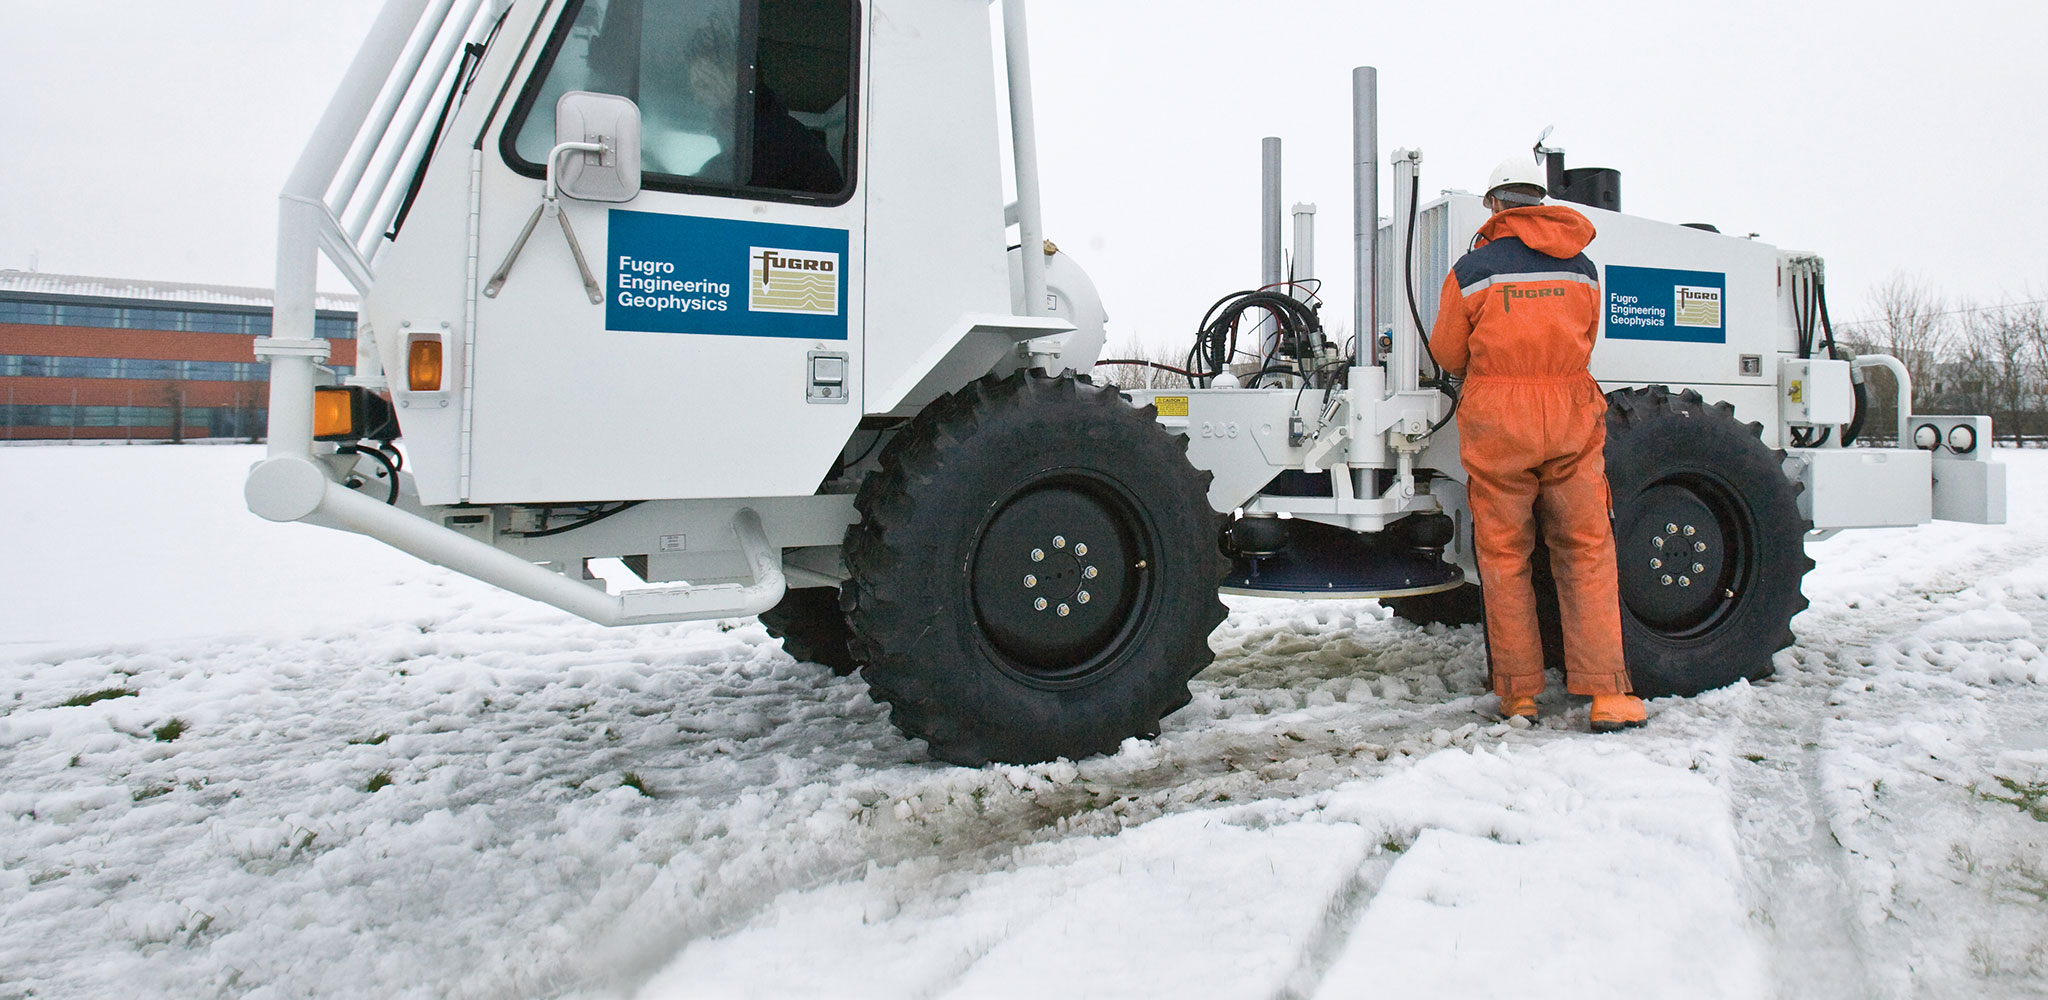 A Fugro Engineering Geophysics engineer prepares to conduct a geophysical survey at a cold-climate site